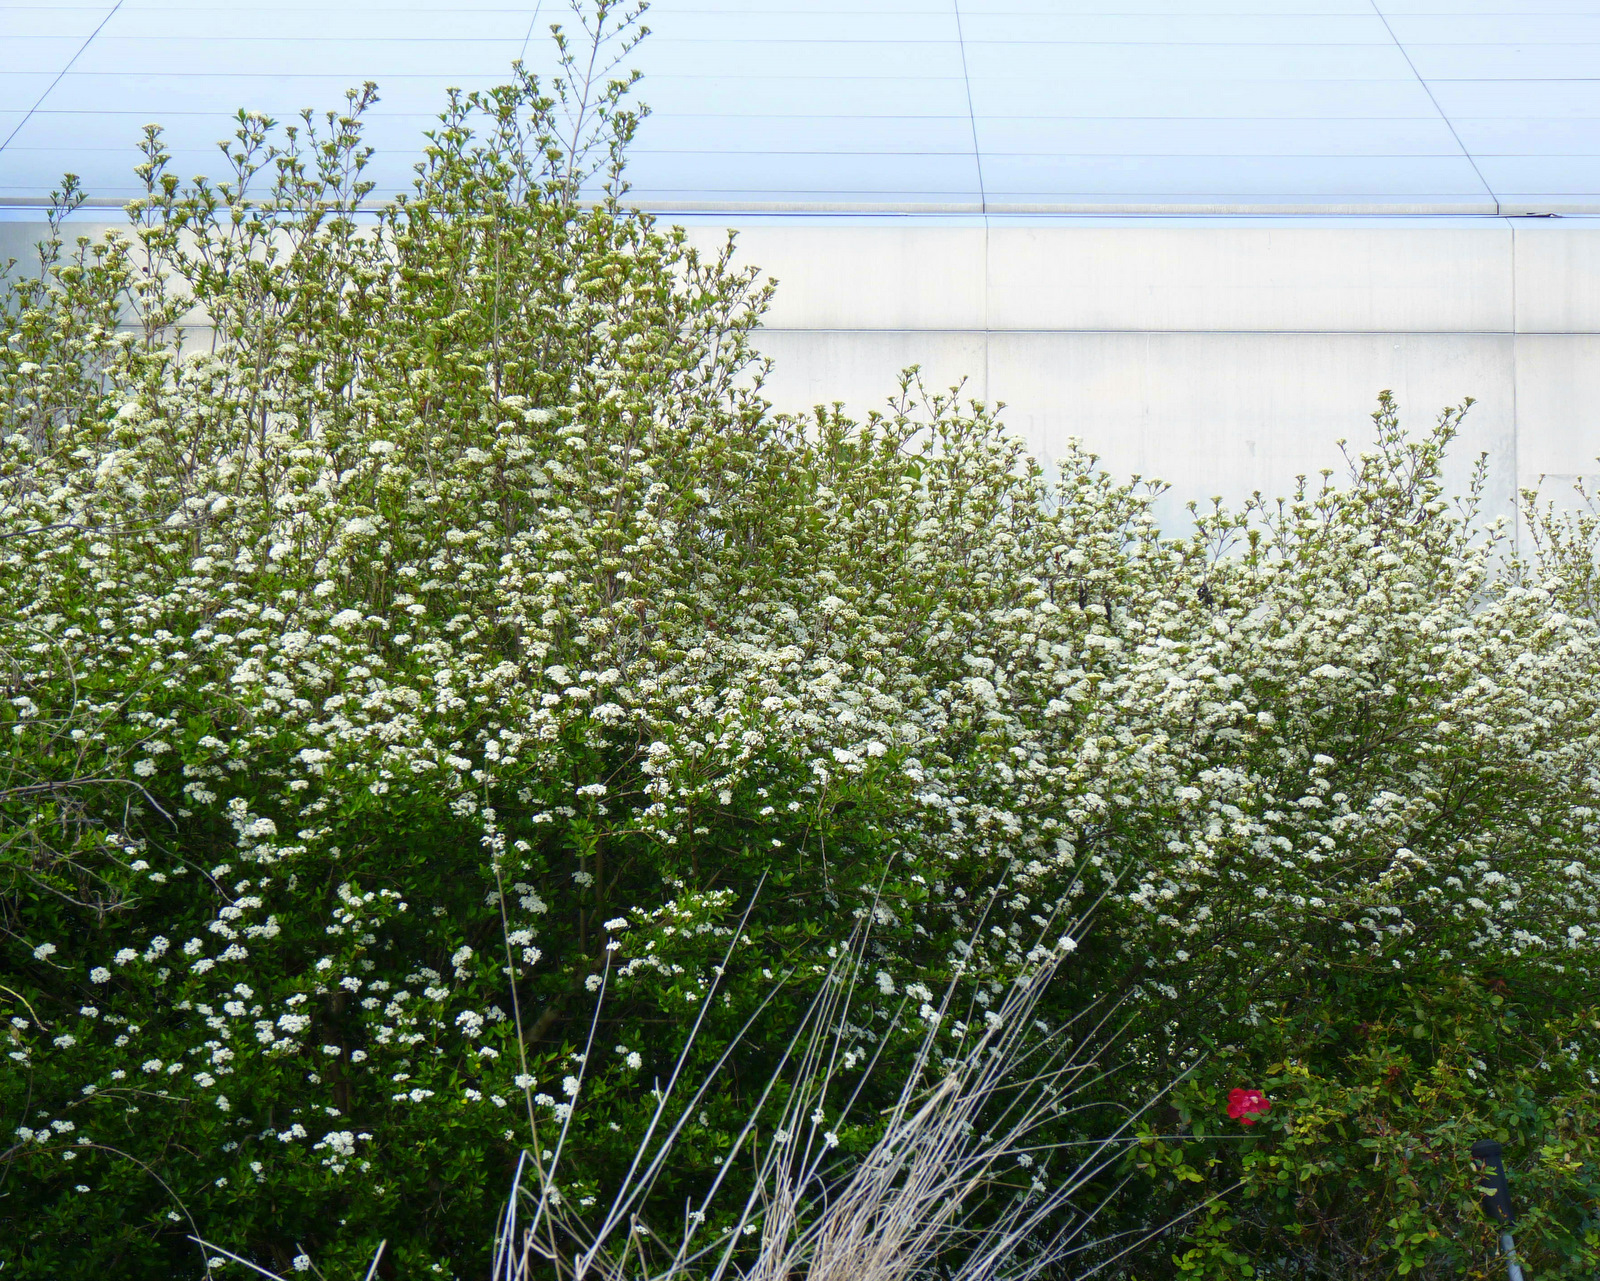 The Taller Walteru0027s Viburnum Can Also Make An Excellent Dense Screen For  The Edge Of A Property Line Or As A Privacy Hedge. Walteru0027s Viburnum Is  Well ...